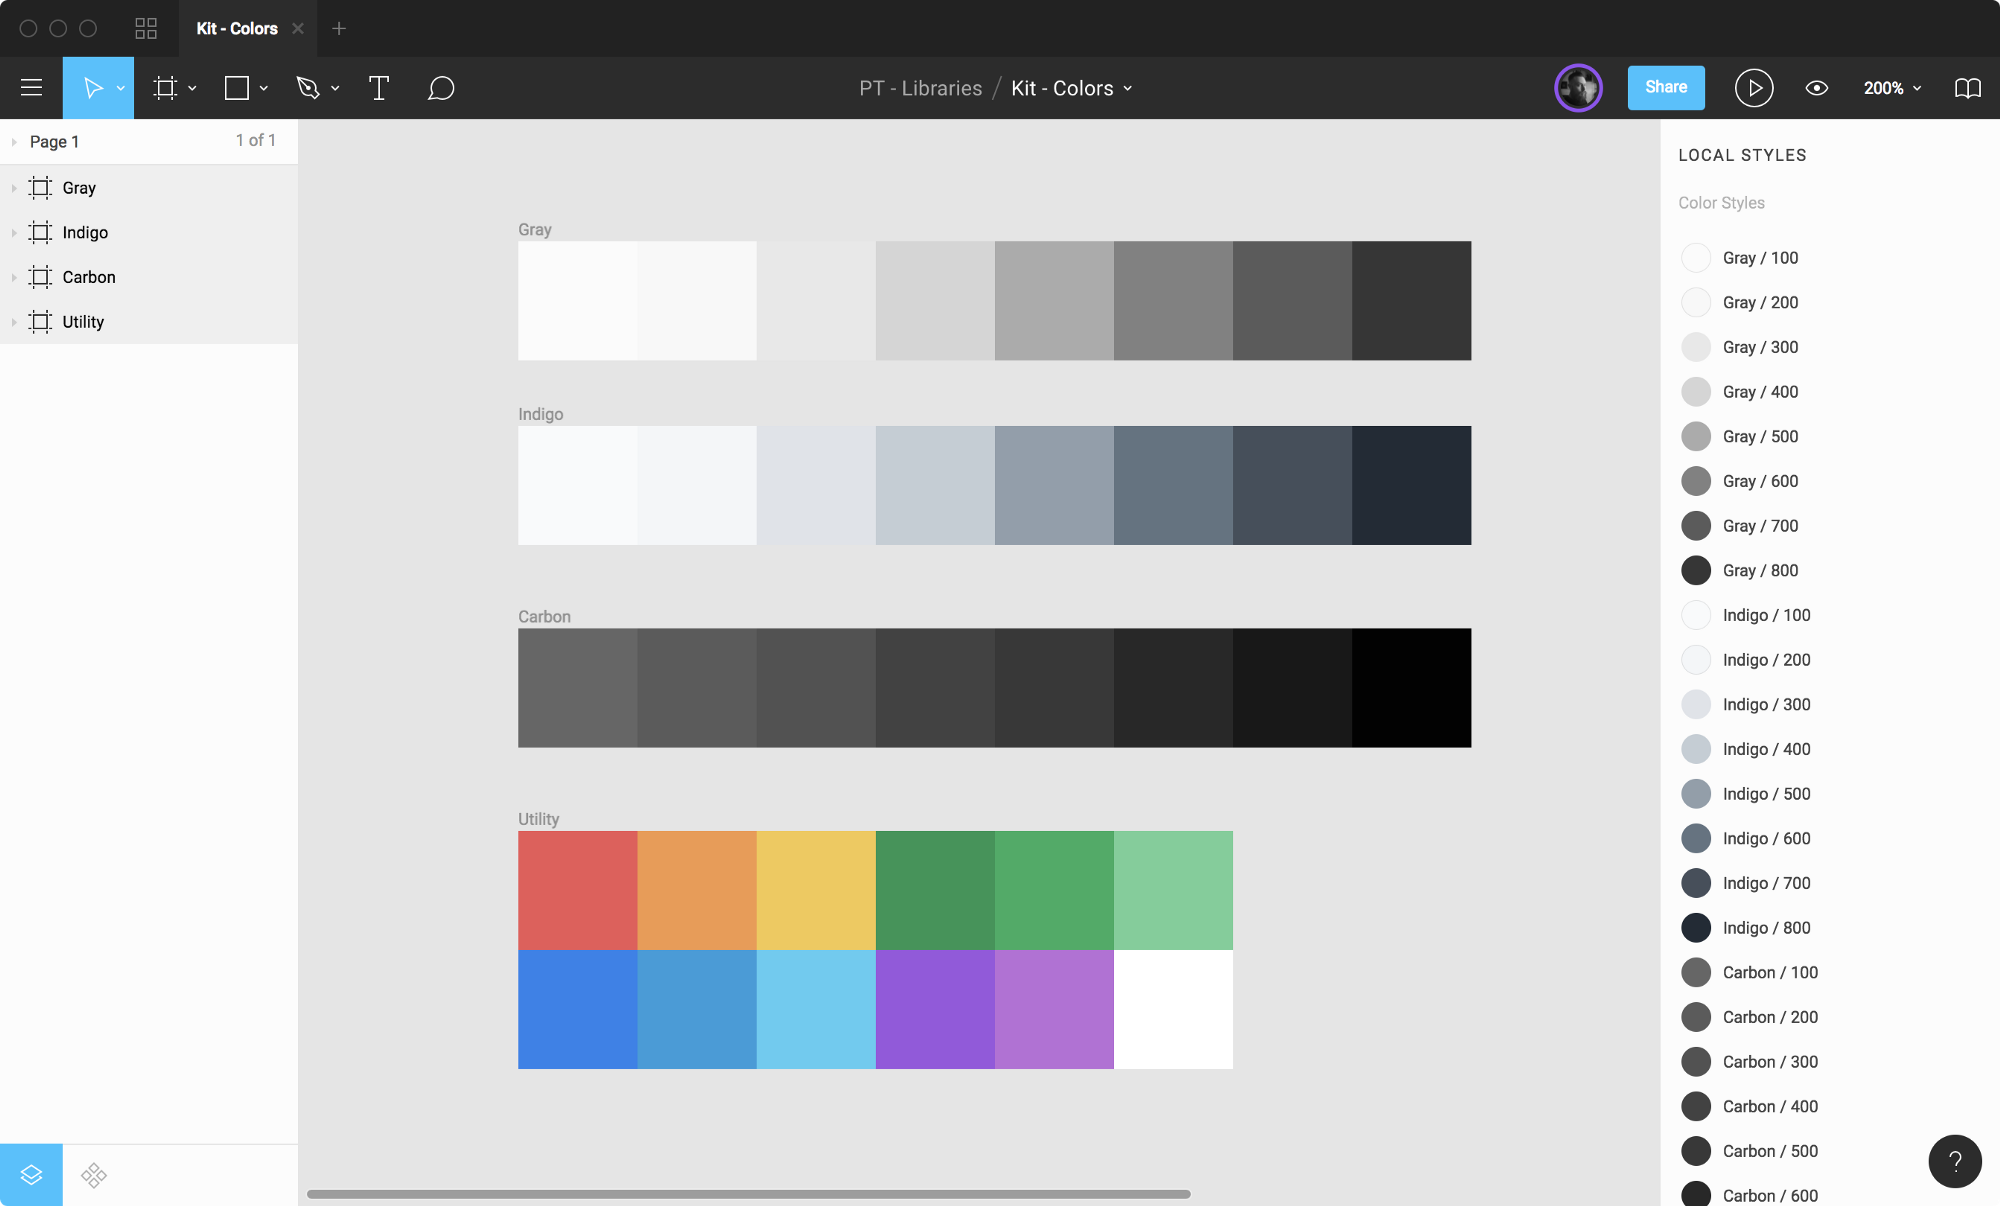 Figma: Colors & Styles 🌈 - Paper Tiger Insights